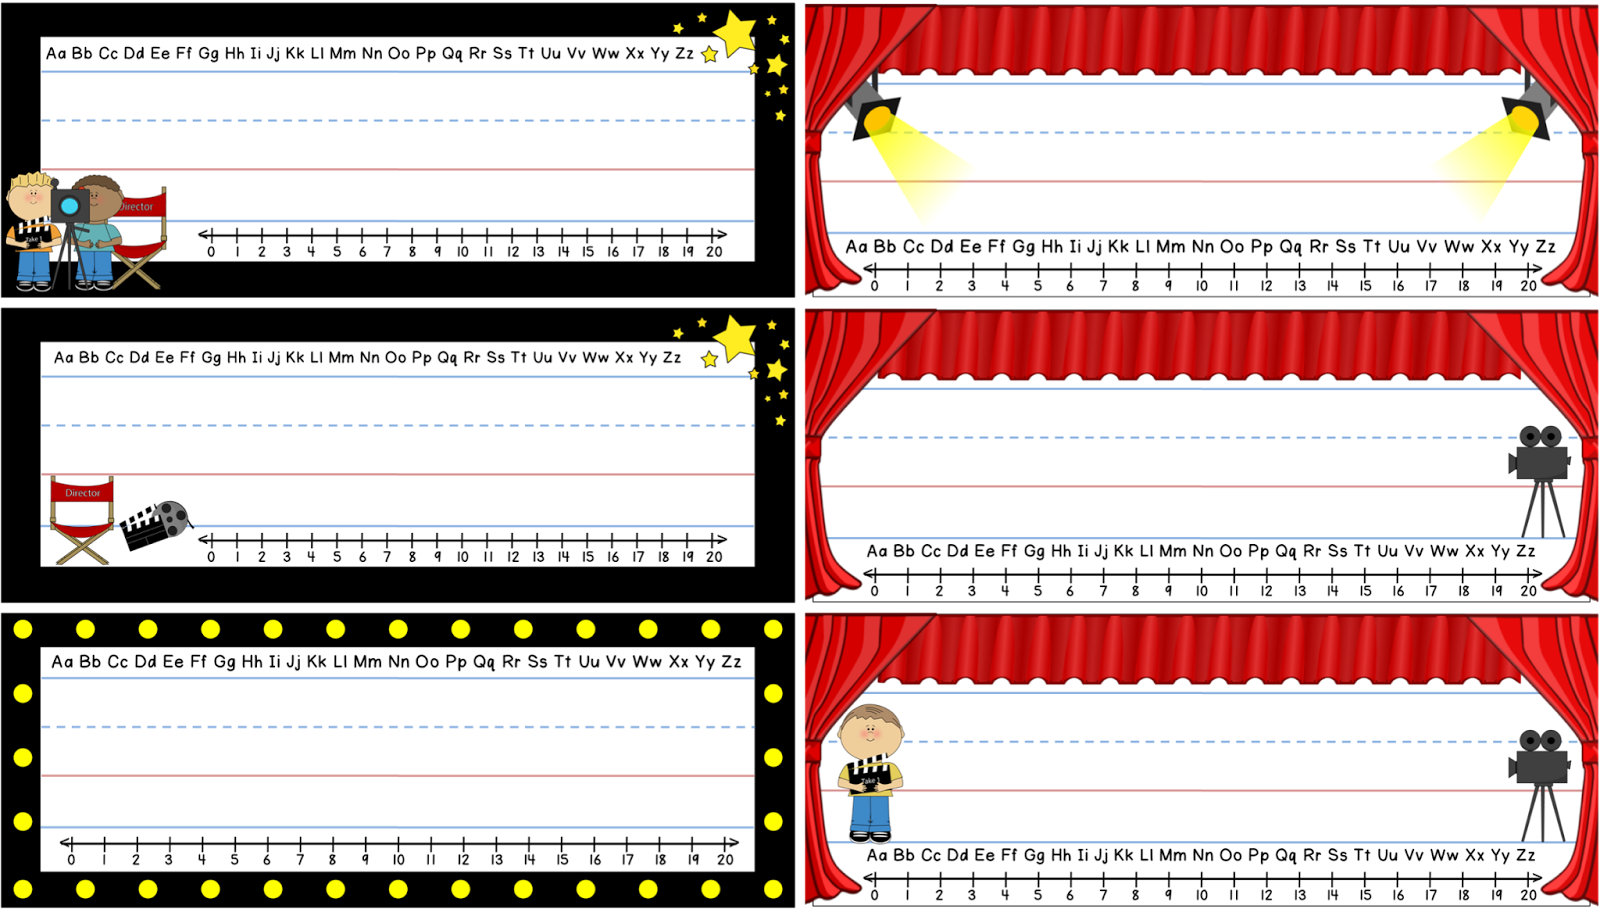 http://www.teacherspayteachers.com/Product/Freebie-Movie-Theme-Name-Plates-1382623